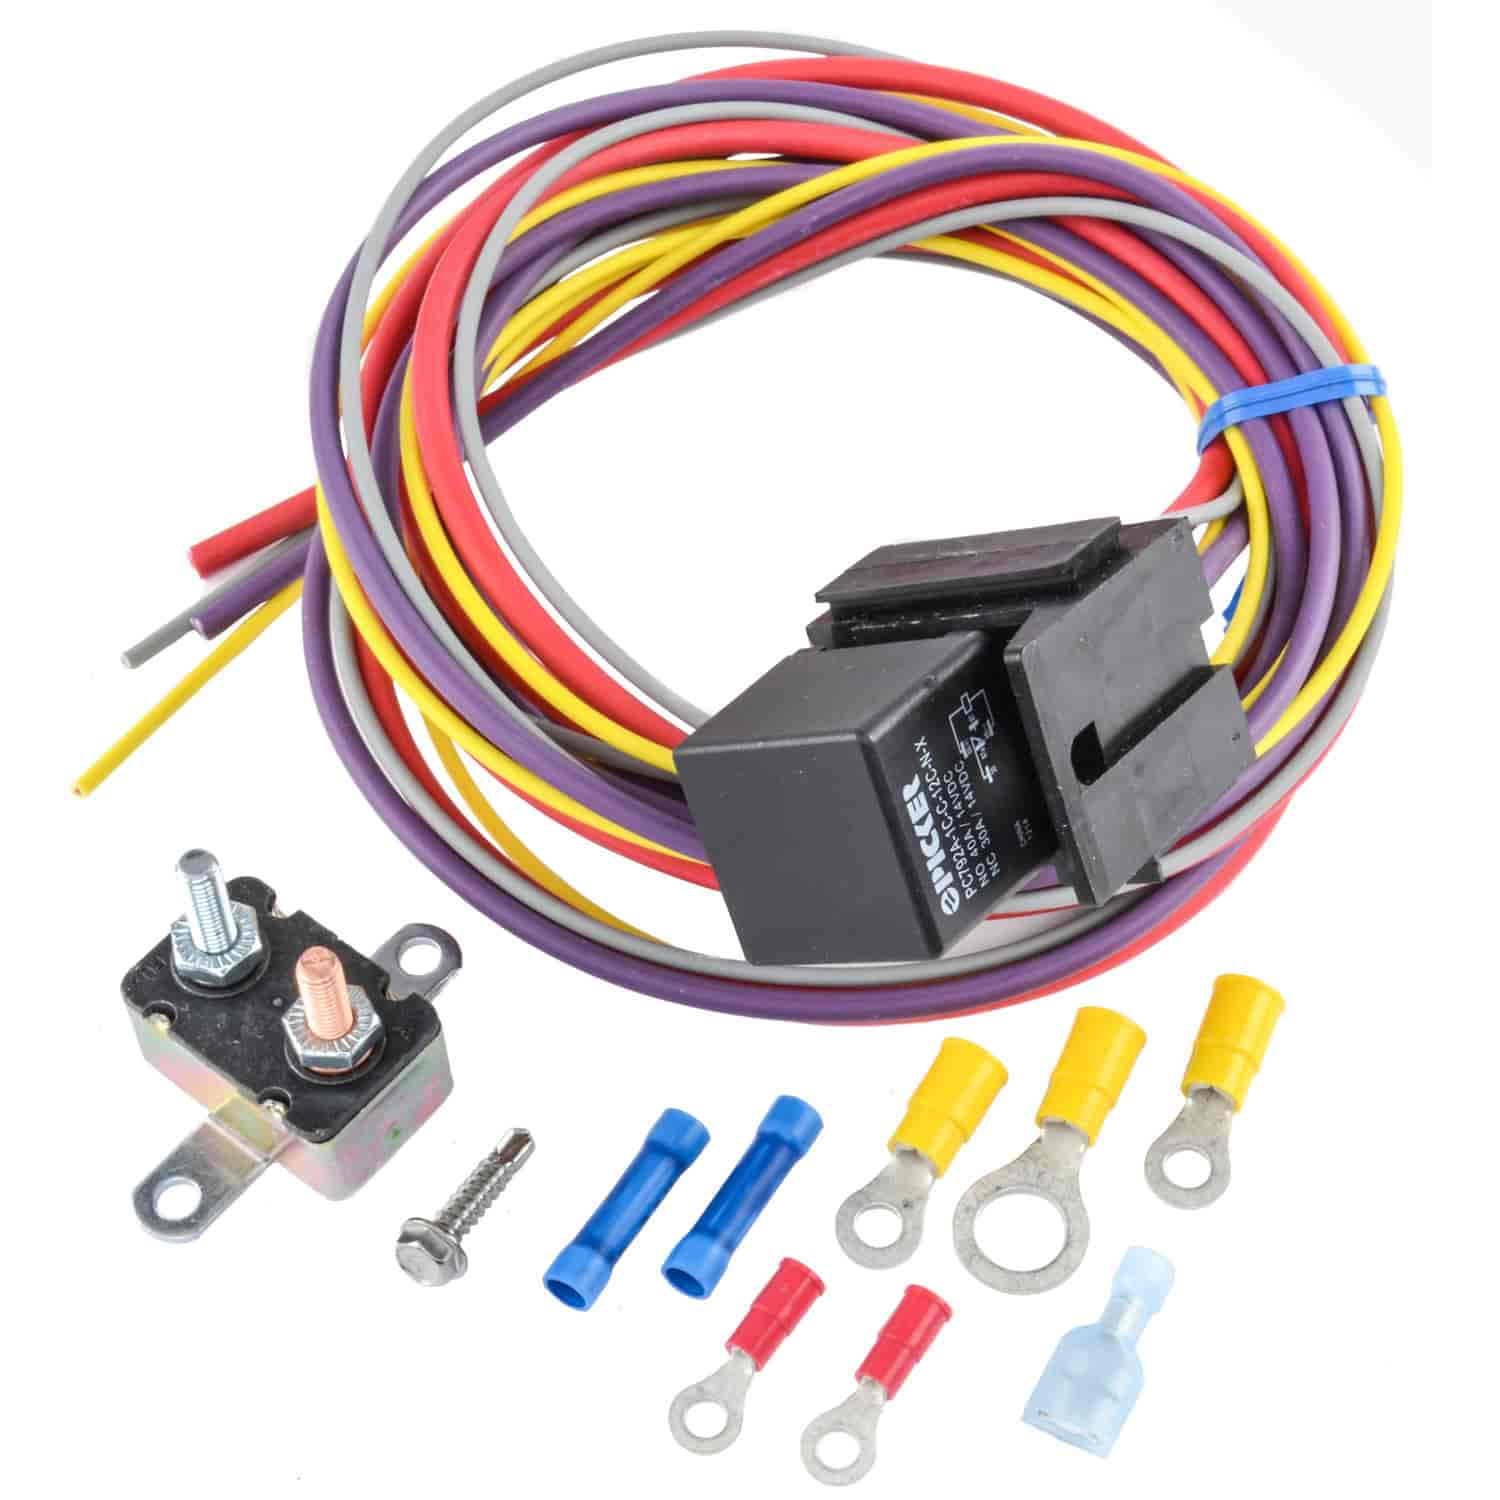 555 10559 jegs performance products 10559 manual controlled single fan jegs universal wiring harness at reclaimingppi.co